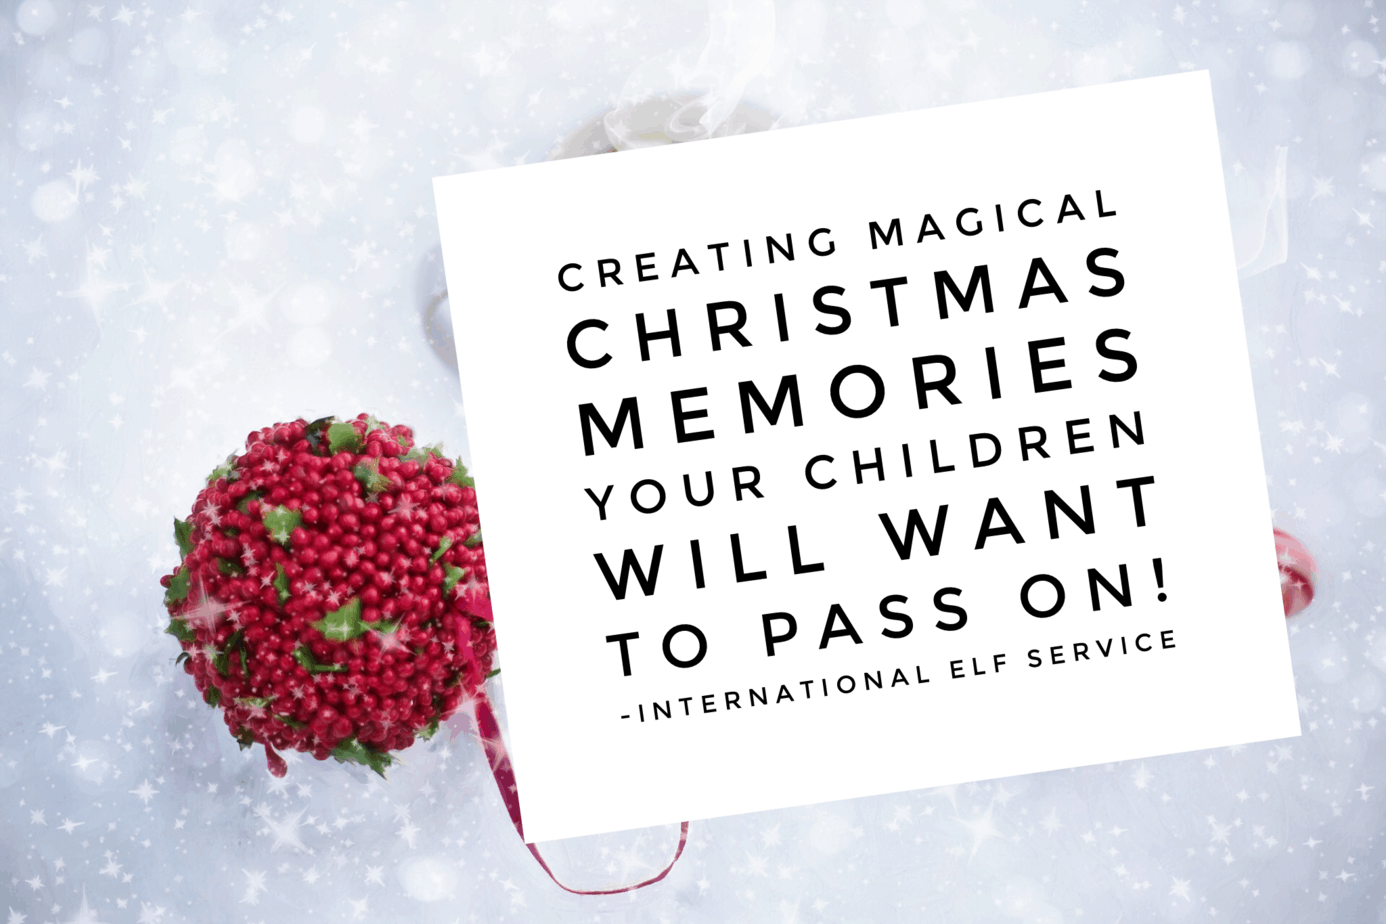 Creating magical Christmas memories your children will want to pass on - by the International Elf Service